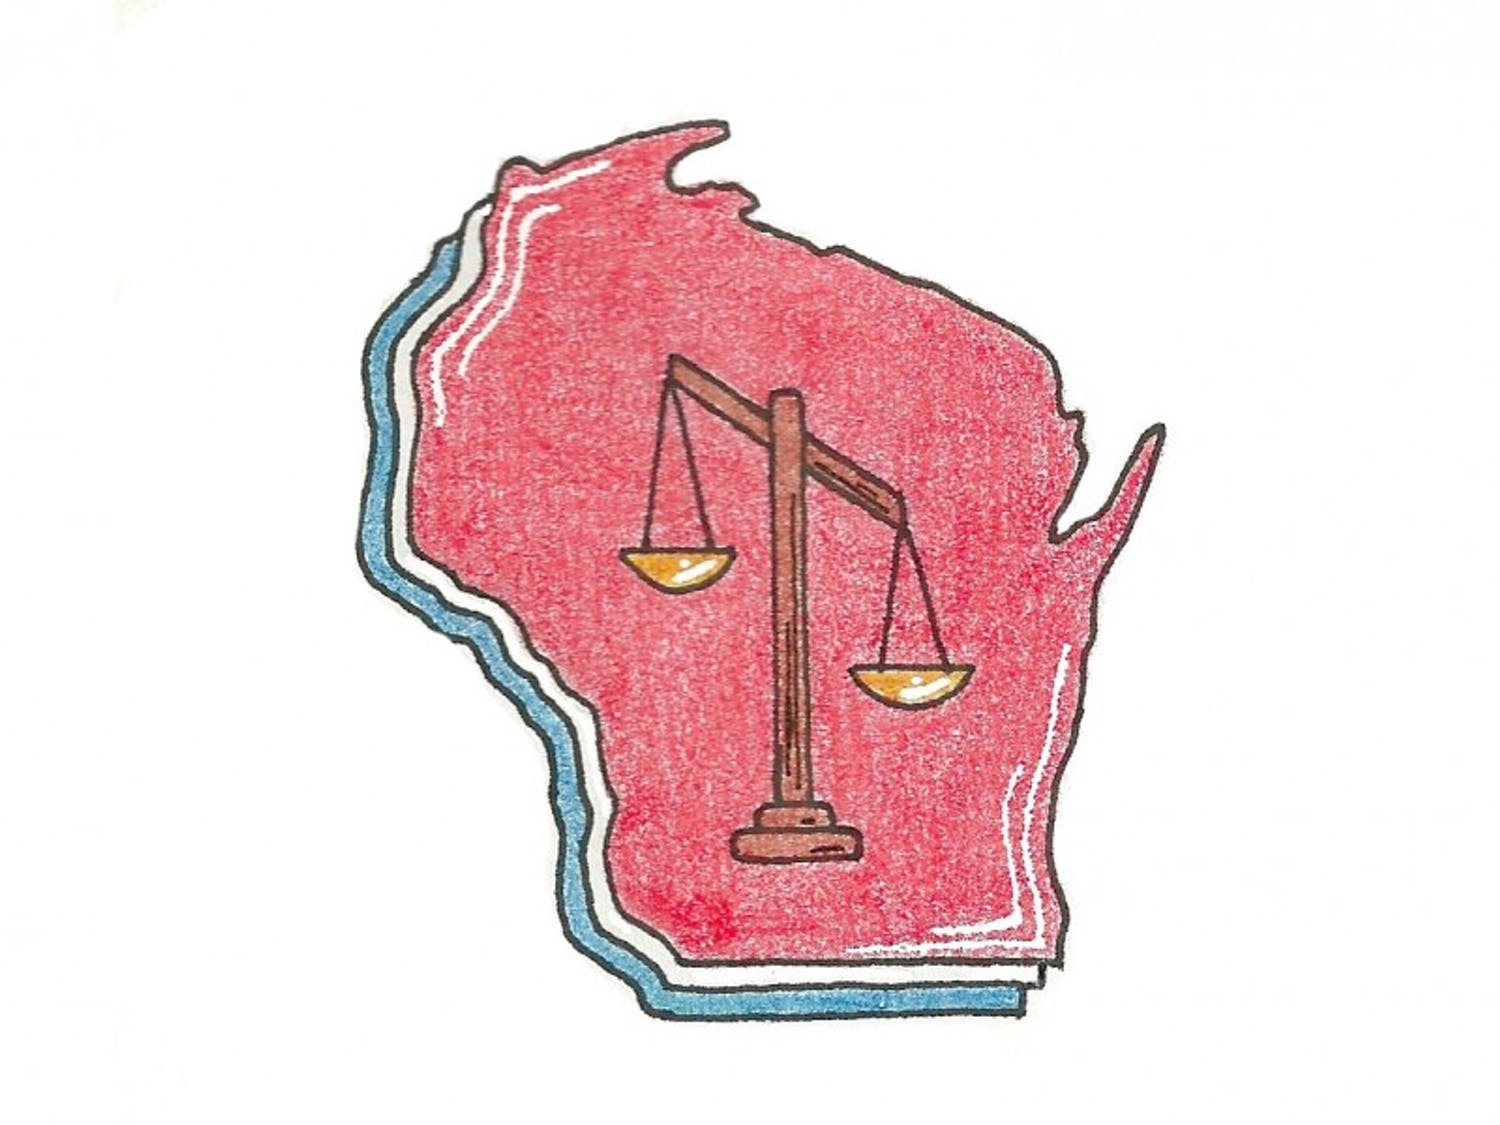 Though judges are not affiliated with a particular political party, recent Supreme Court elections in Wisconsin have become bitterly partisan battles over ideology.